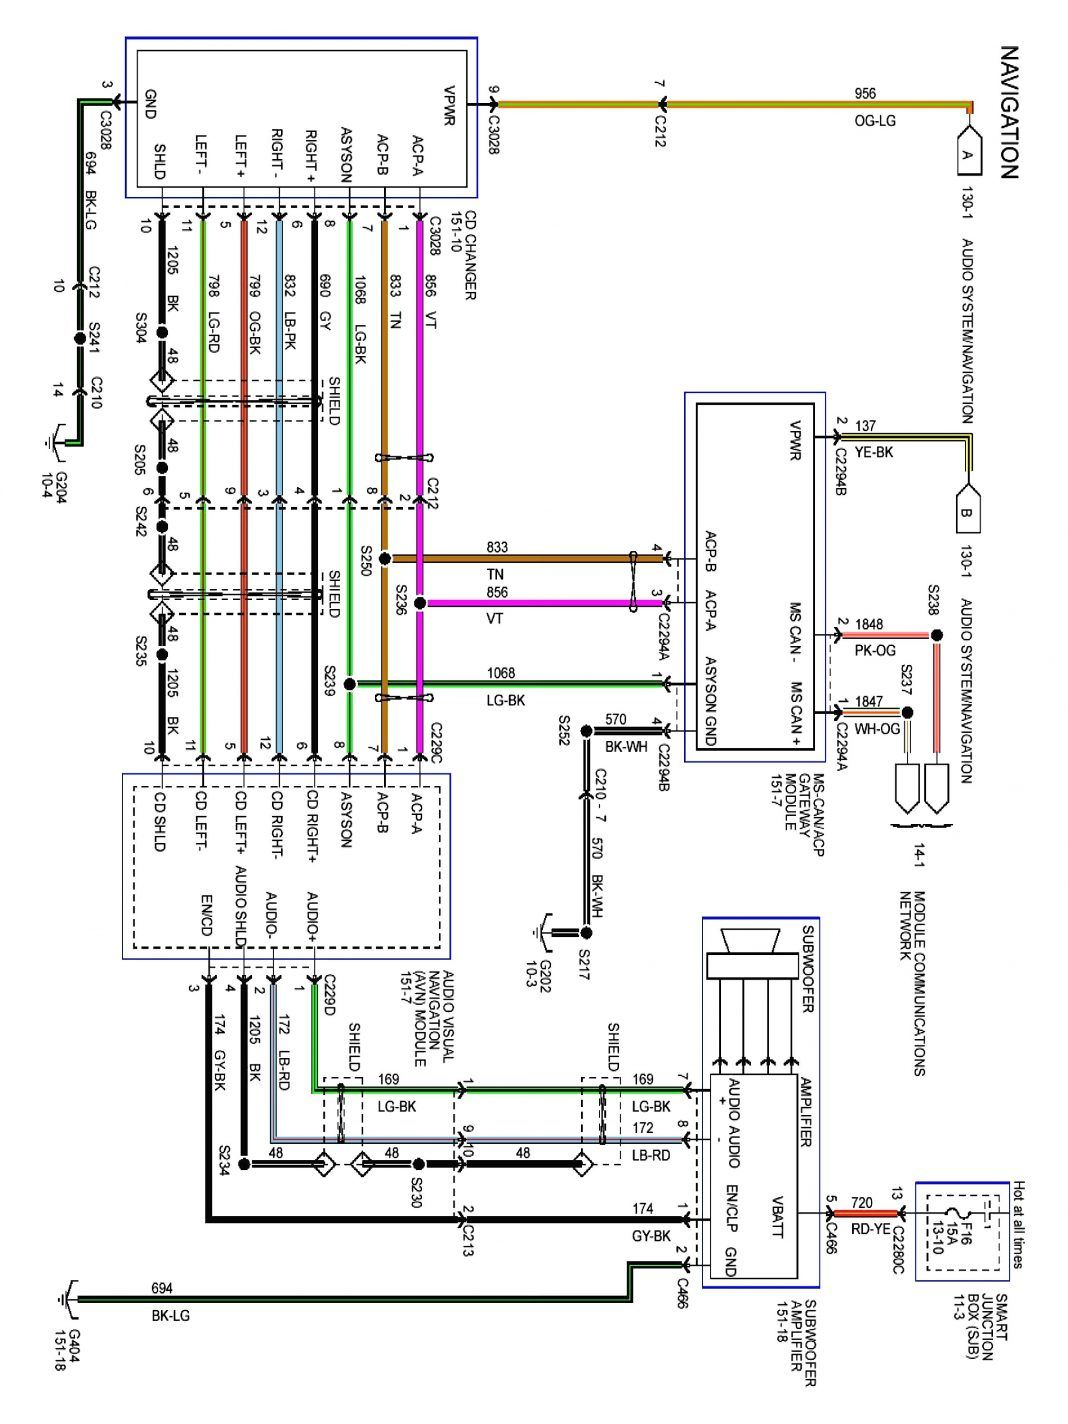 23 Complex Wiring Diagram Online For You Bacamajalah Ford Expedition Electrical Wiring Diagram Trailer Wiring Diagram